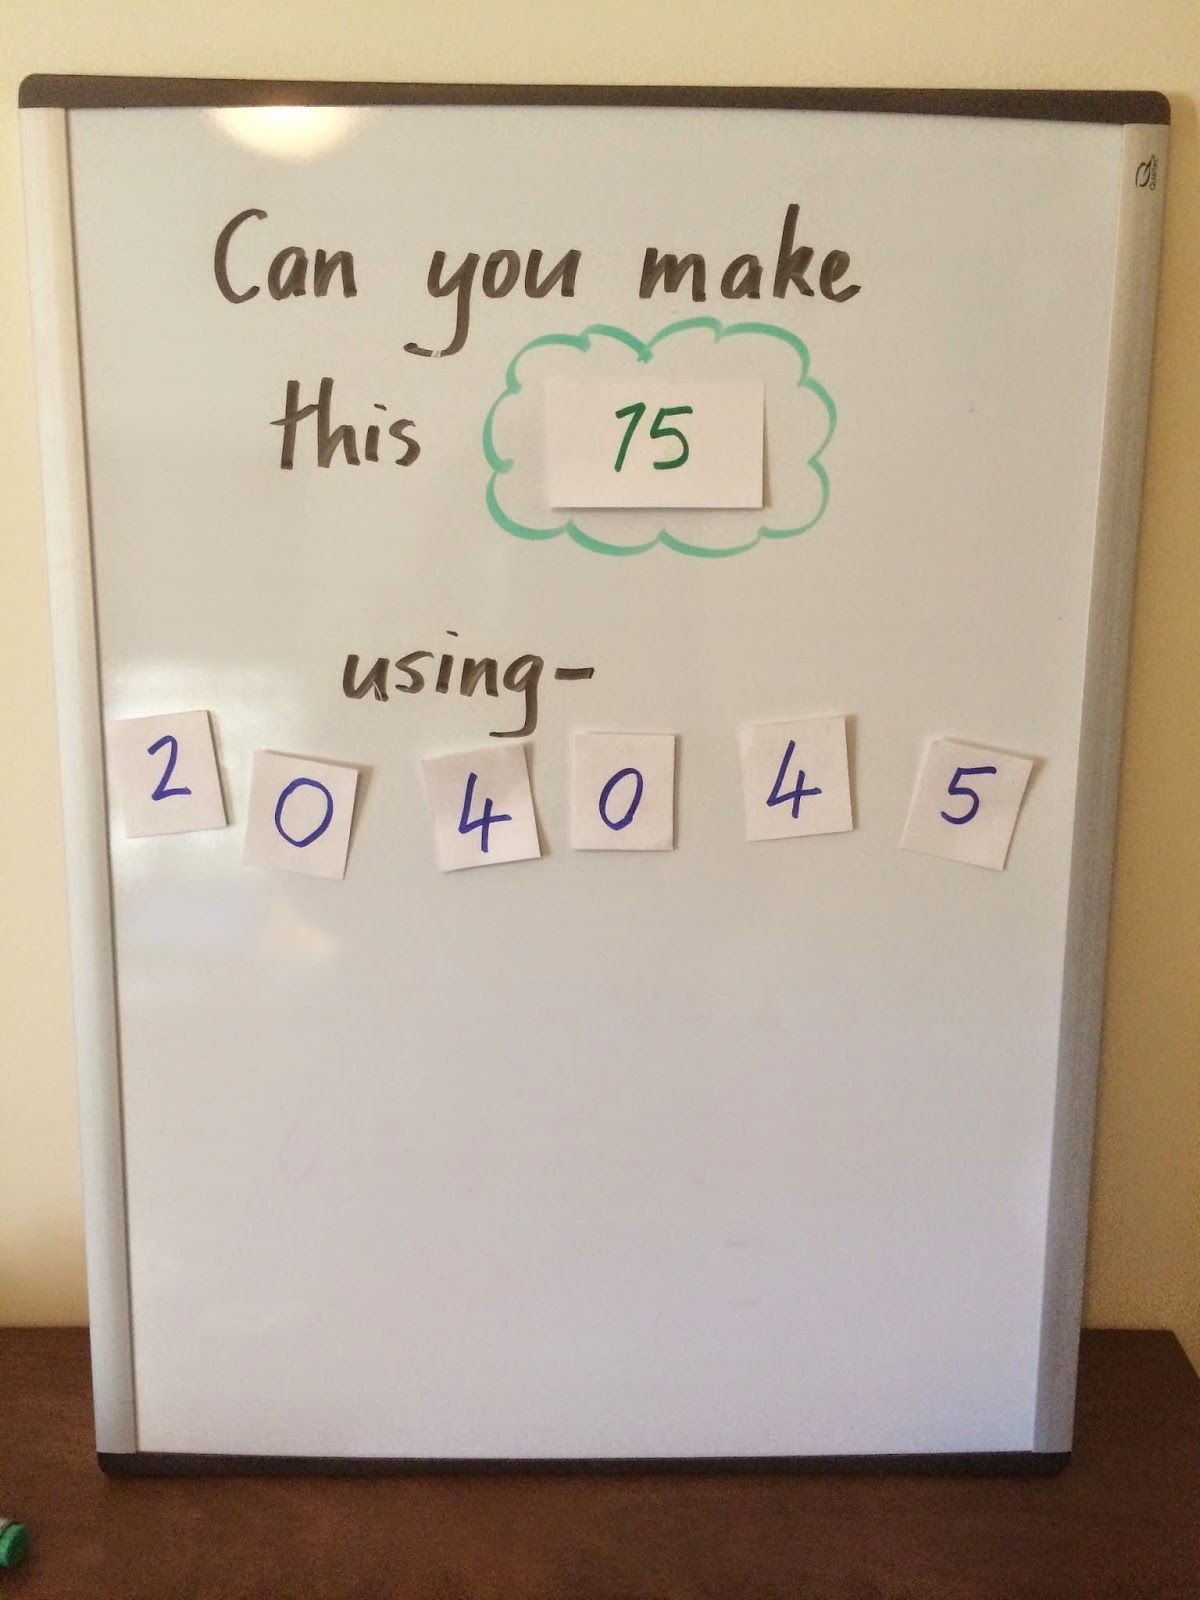 Fun Games 4 Learning: Math to Make Them Think! | Education ...